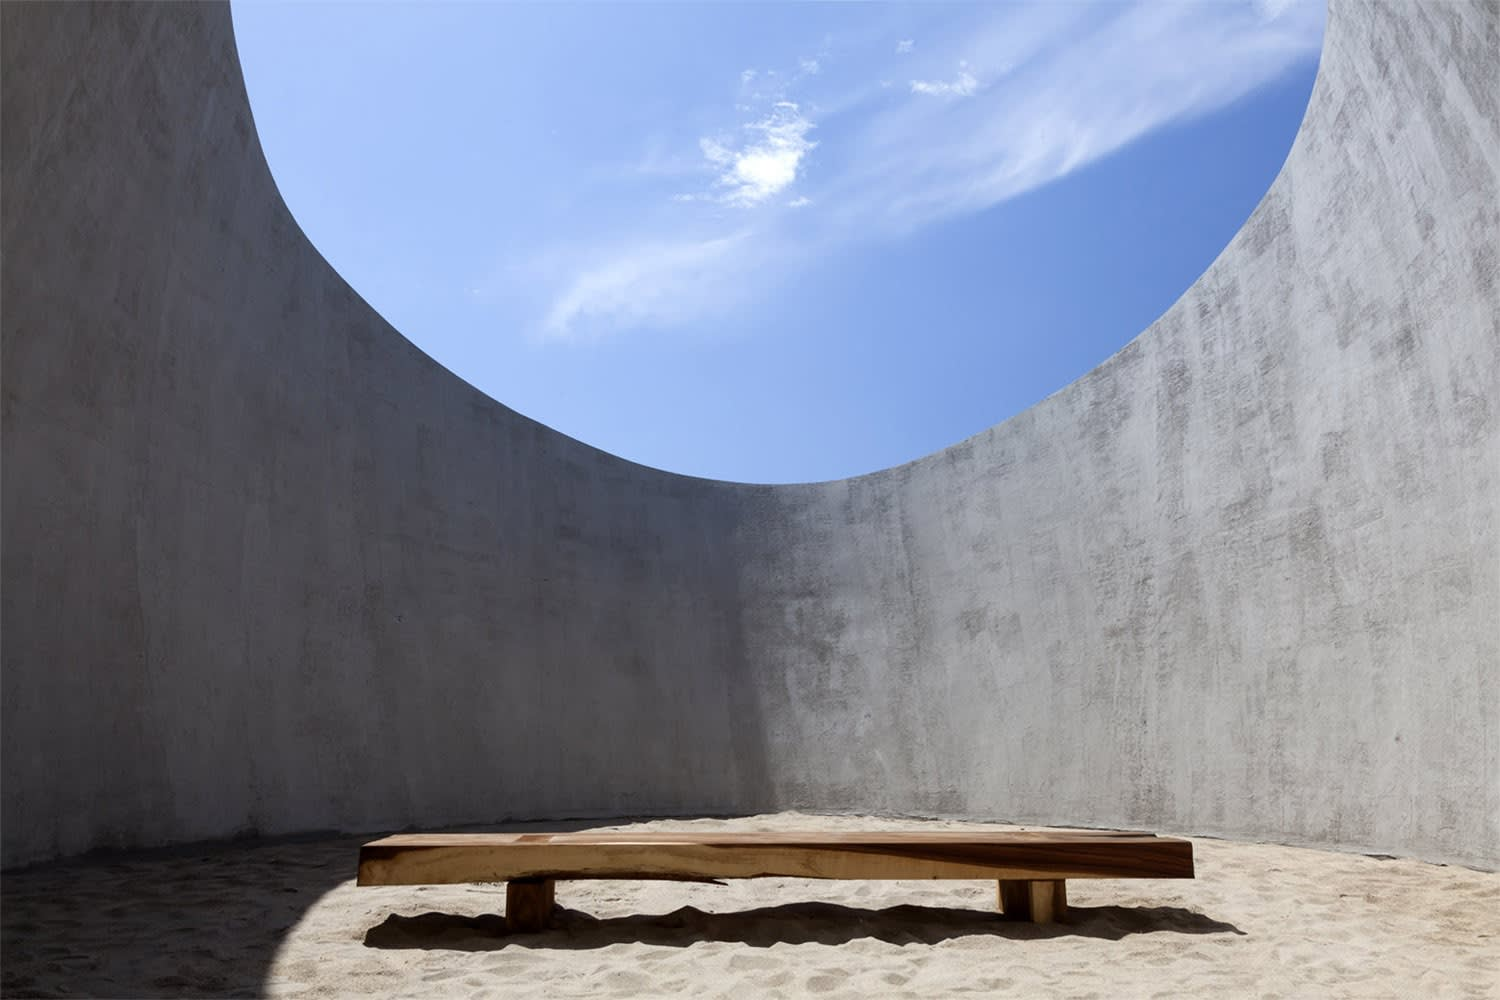 Tadao Ando. The observatory at Casa Wabi. Puerto Escondido, Mexico. Source: Wikicommons